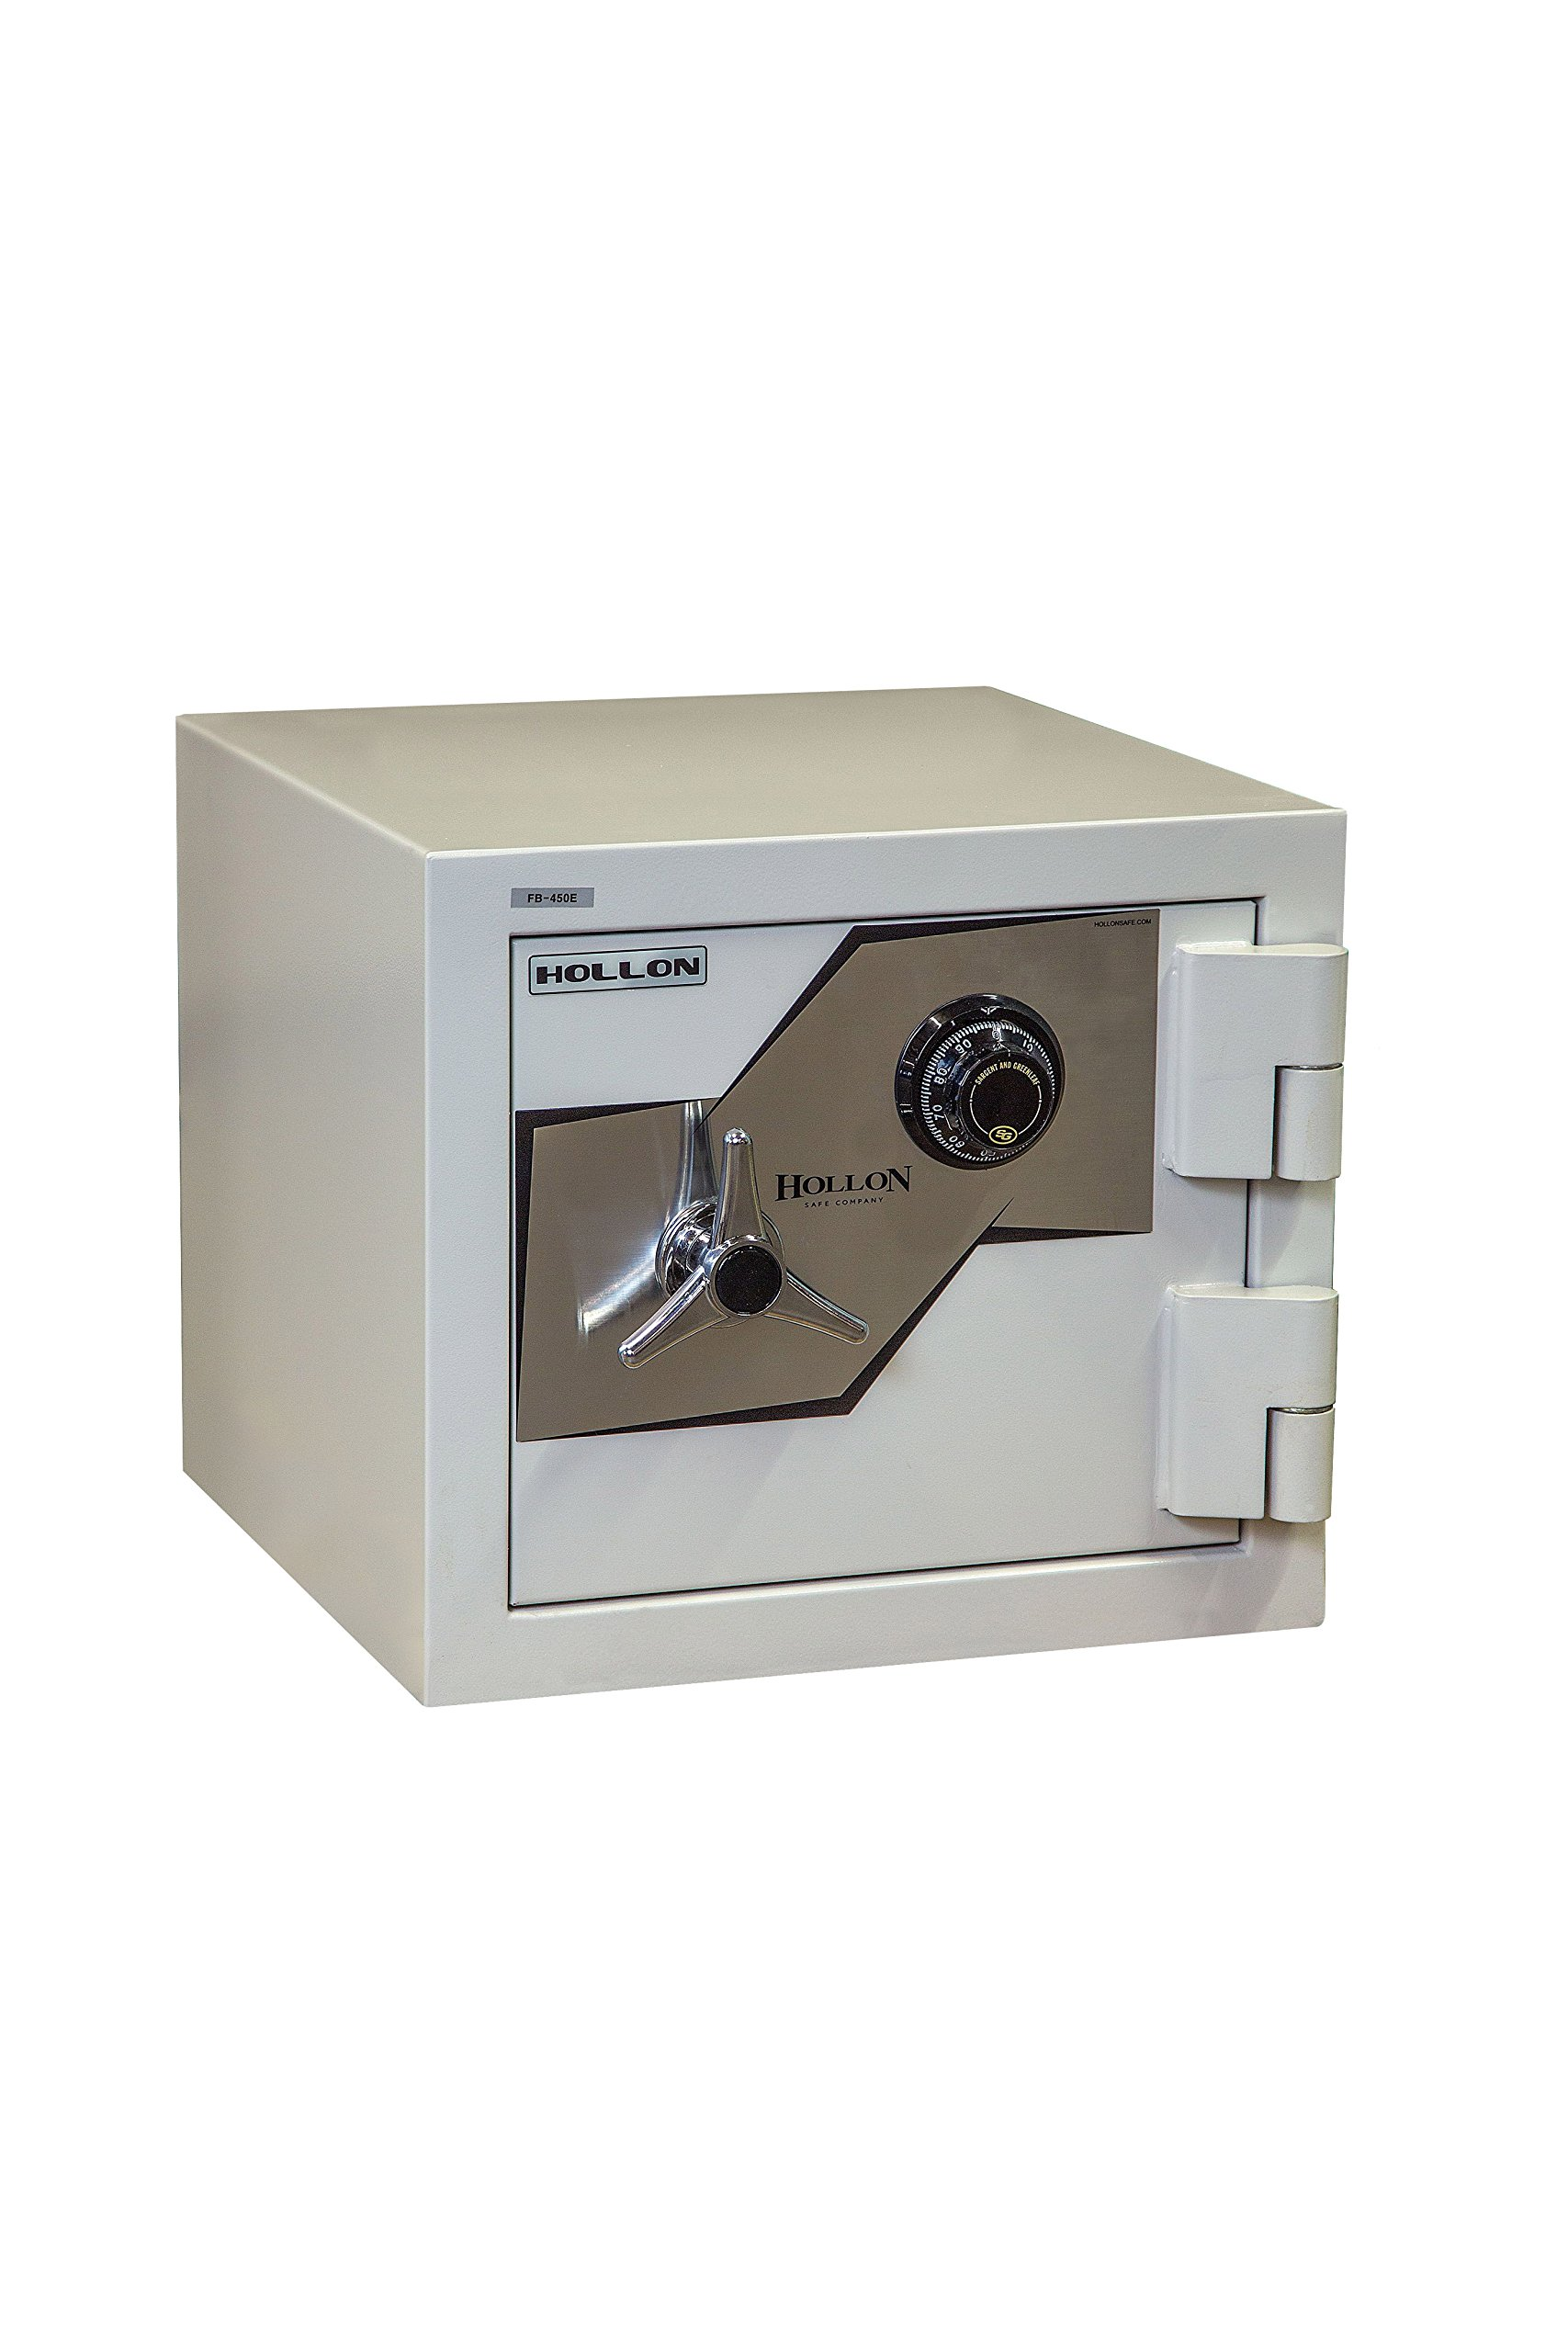 Hollon Safe FB-450C Oyster Series B-Rated 2 Hr Fireproof Security Safe Size: 1.23 Cu.Ft., Lock Type: Dial Combination Lock